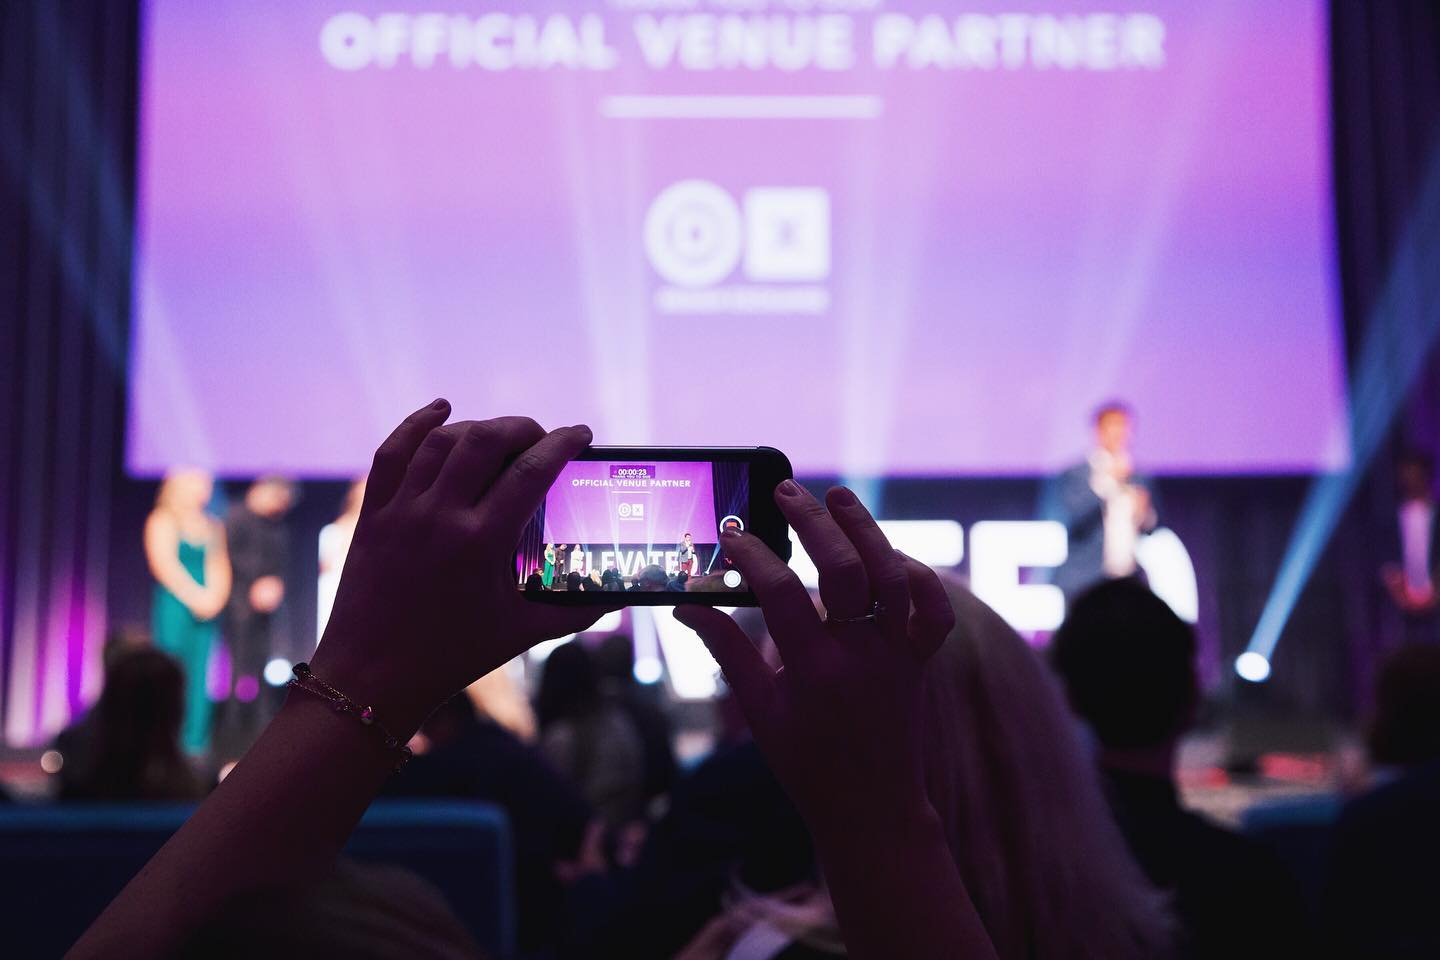 an attendee takes a photo of the main stage at the elevate ai festival in 2018